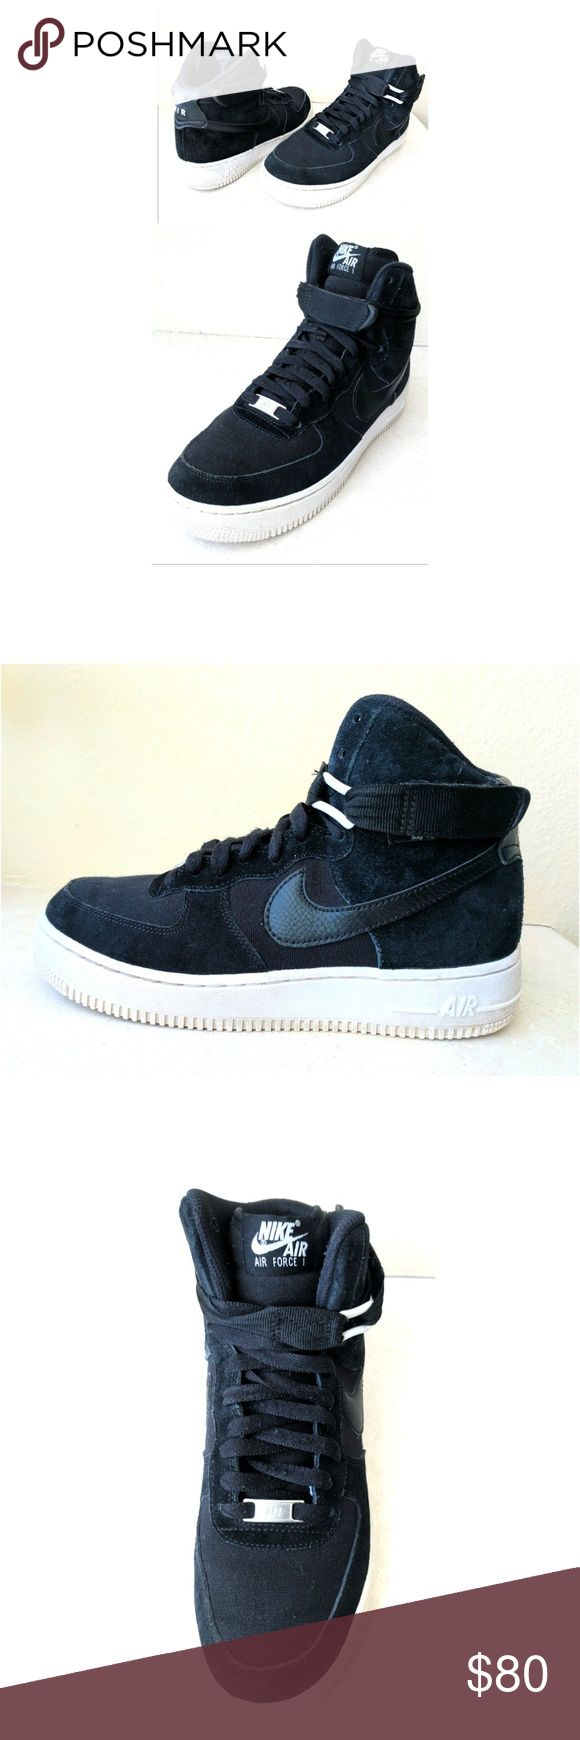 Nike Air Force 1 Suede Black Hi Top Sneakers 6Y These Nike Air Force 1s are HOT. Suede black leather and heavy cotton canvas materials create shoe exterior, leather black Nike logo on side of each shoe. White Nike Air logo tag on back heels and tongue flaps. White rubber side &sole  with full grip. adjustable, removable velcro strap. Silver Nike shoelace tag. Size 6Y, 7.5 women's, u.k. 5.5 EUR 38.5, 24 cm. Dress up or down with skinnies and crop tops, leggings and tees...In GREAT CONDITION…